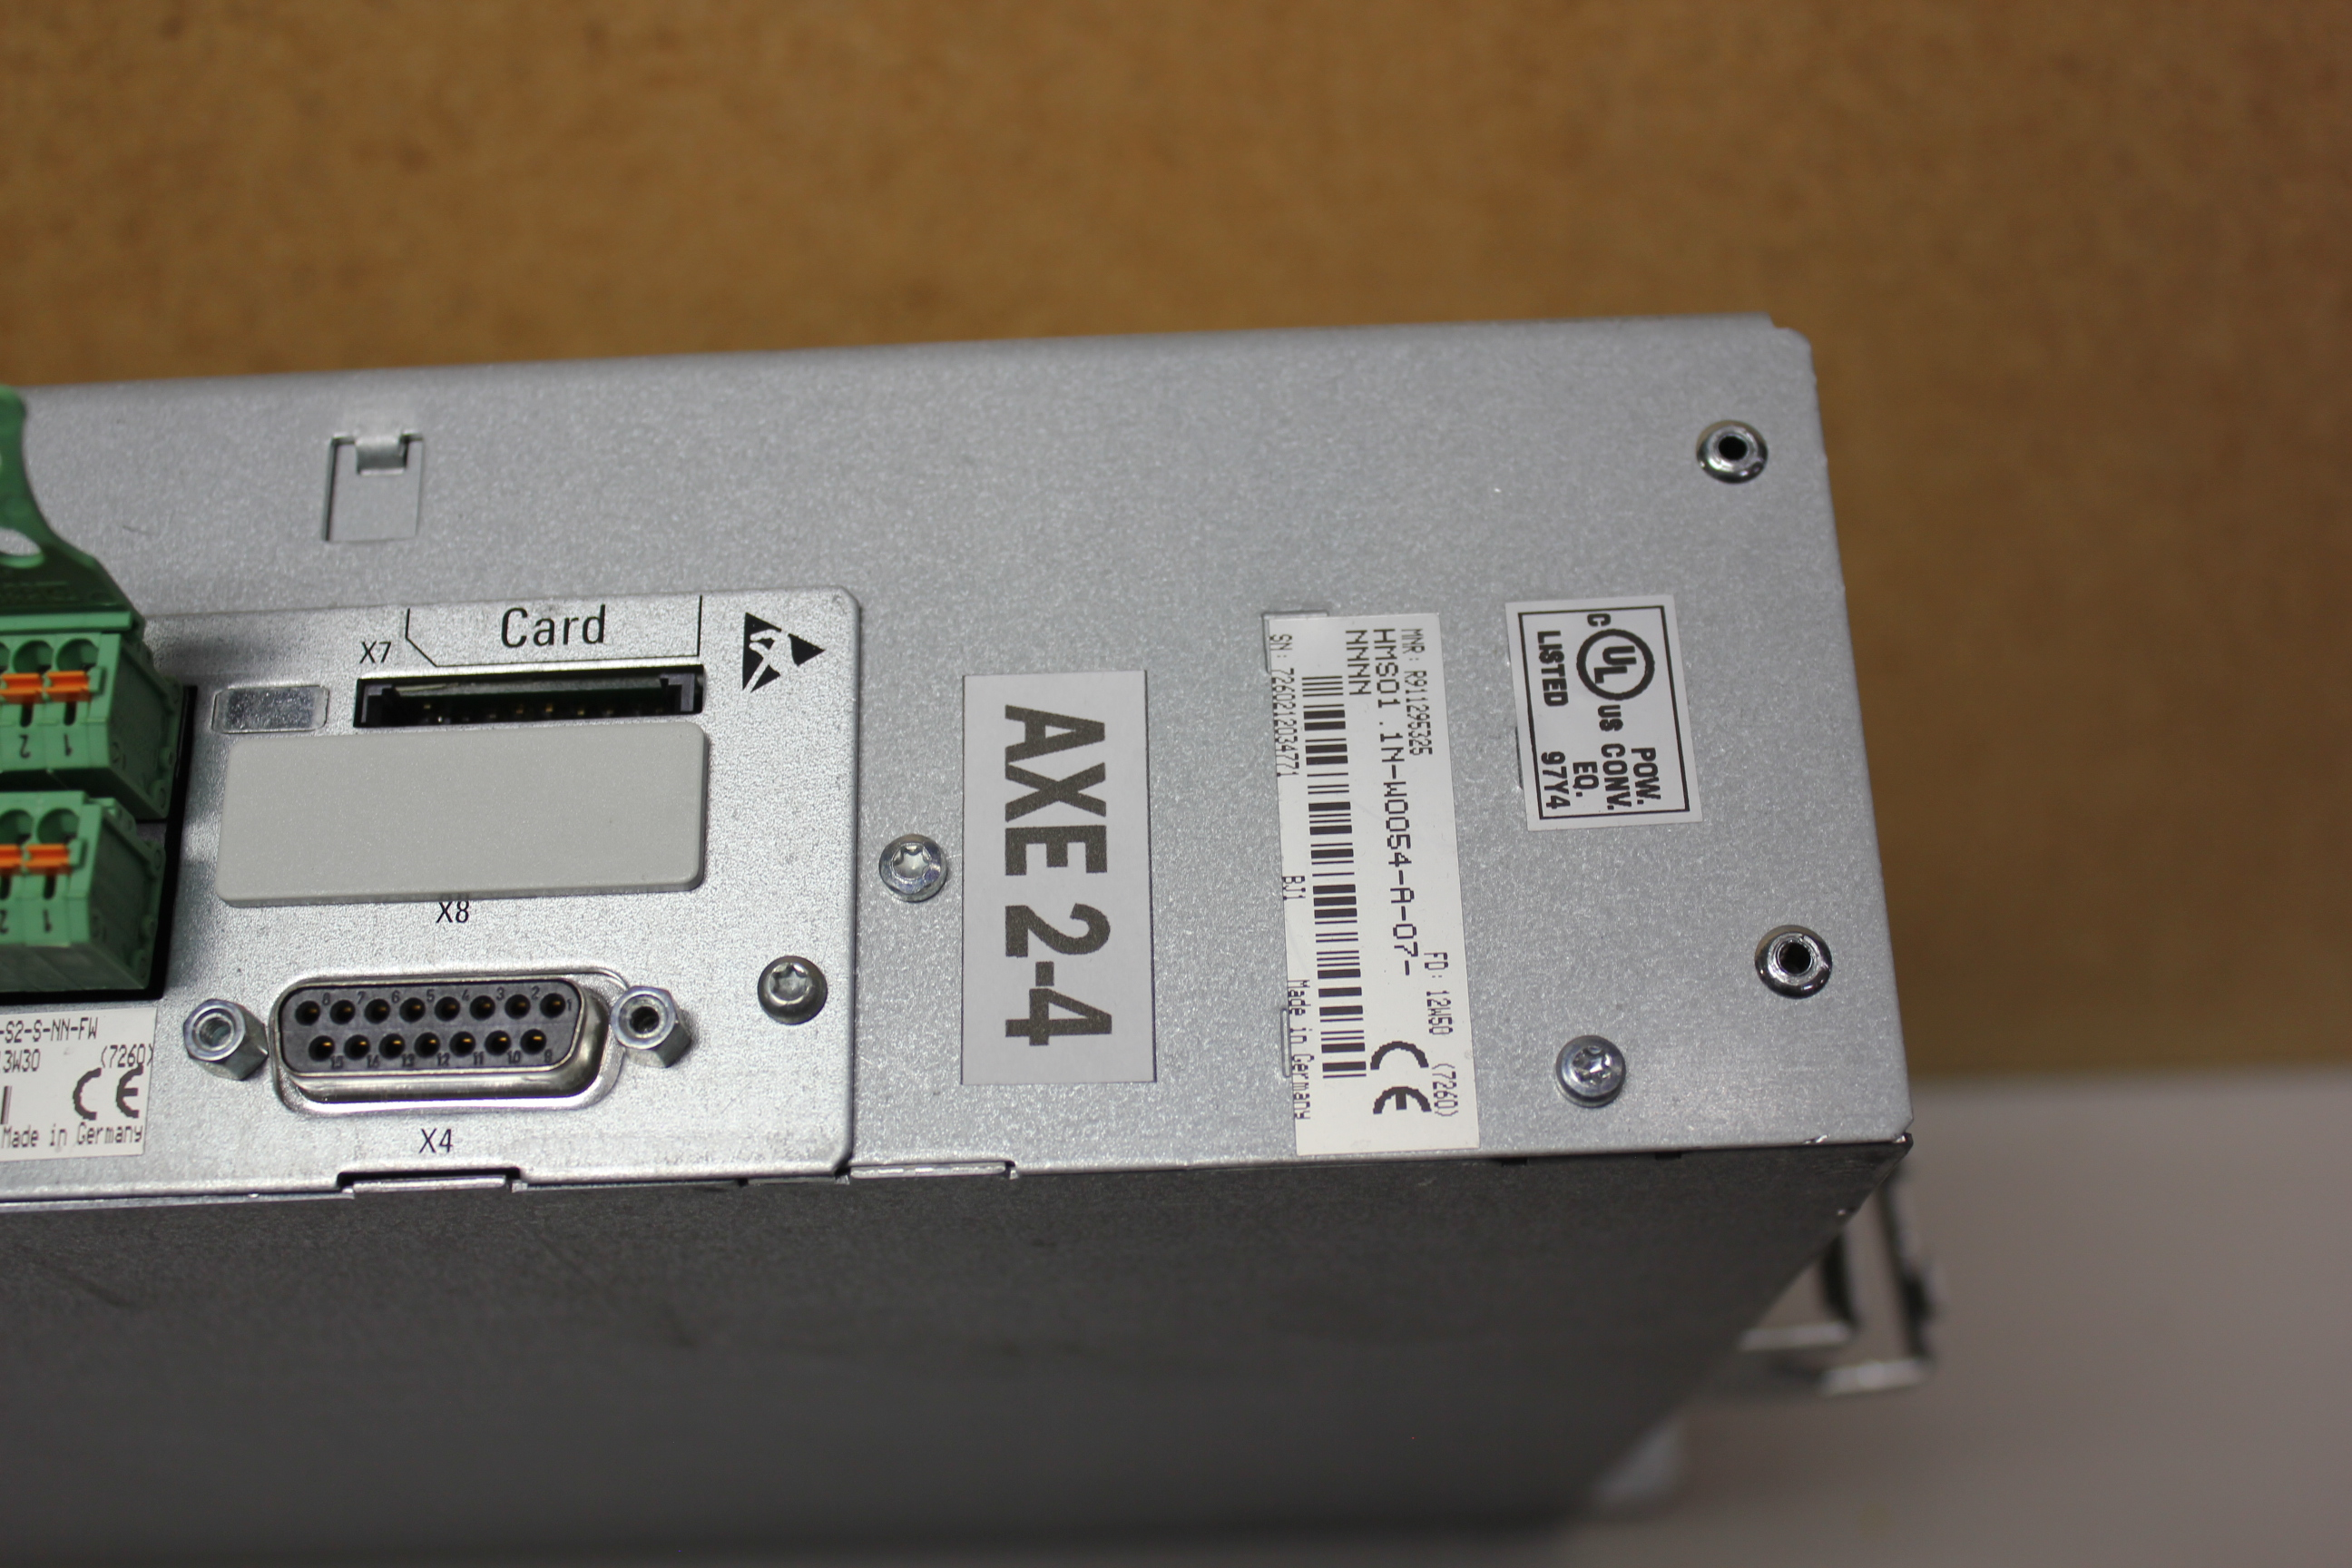 REXROTH INDRADRIVE M SINGLE AXIS INVERTER WITH SERCOS MODULE - Image 5 of 7